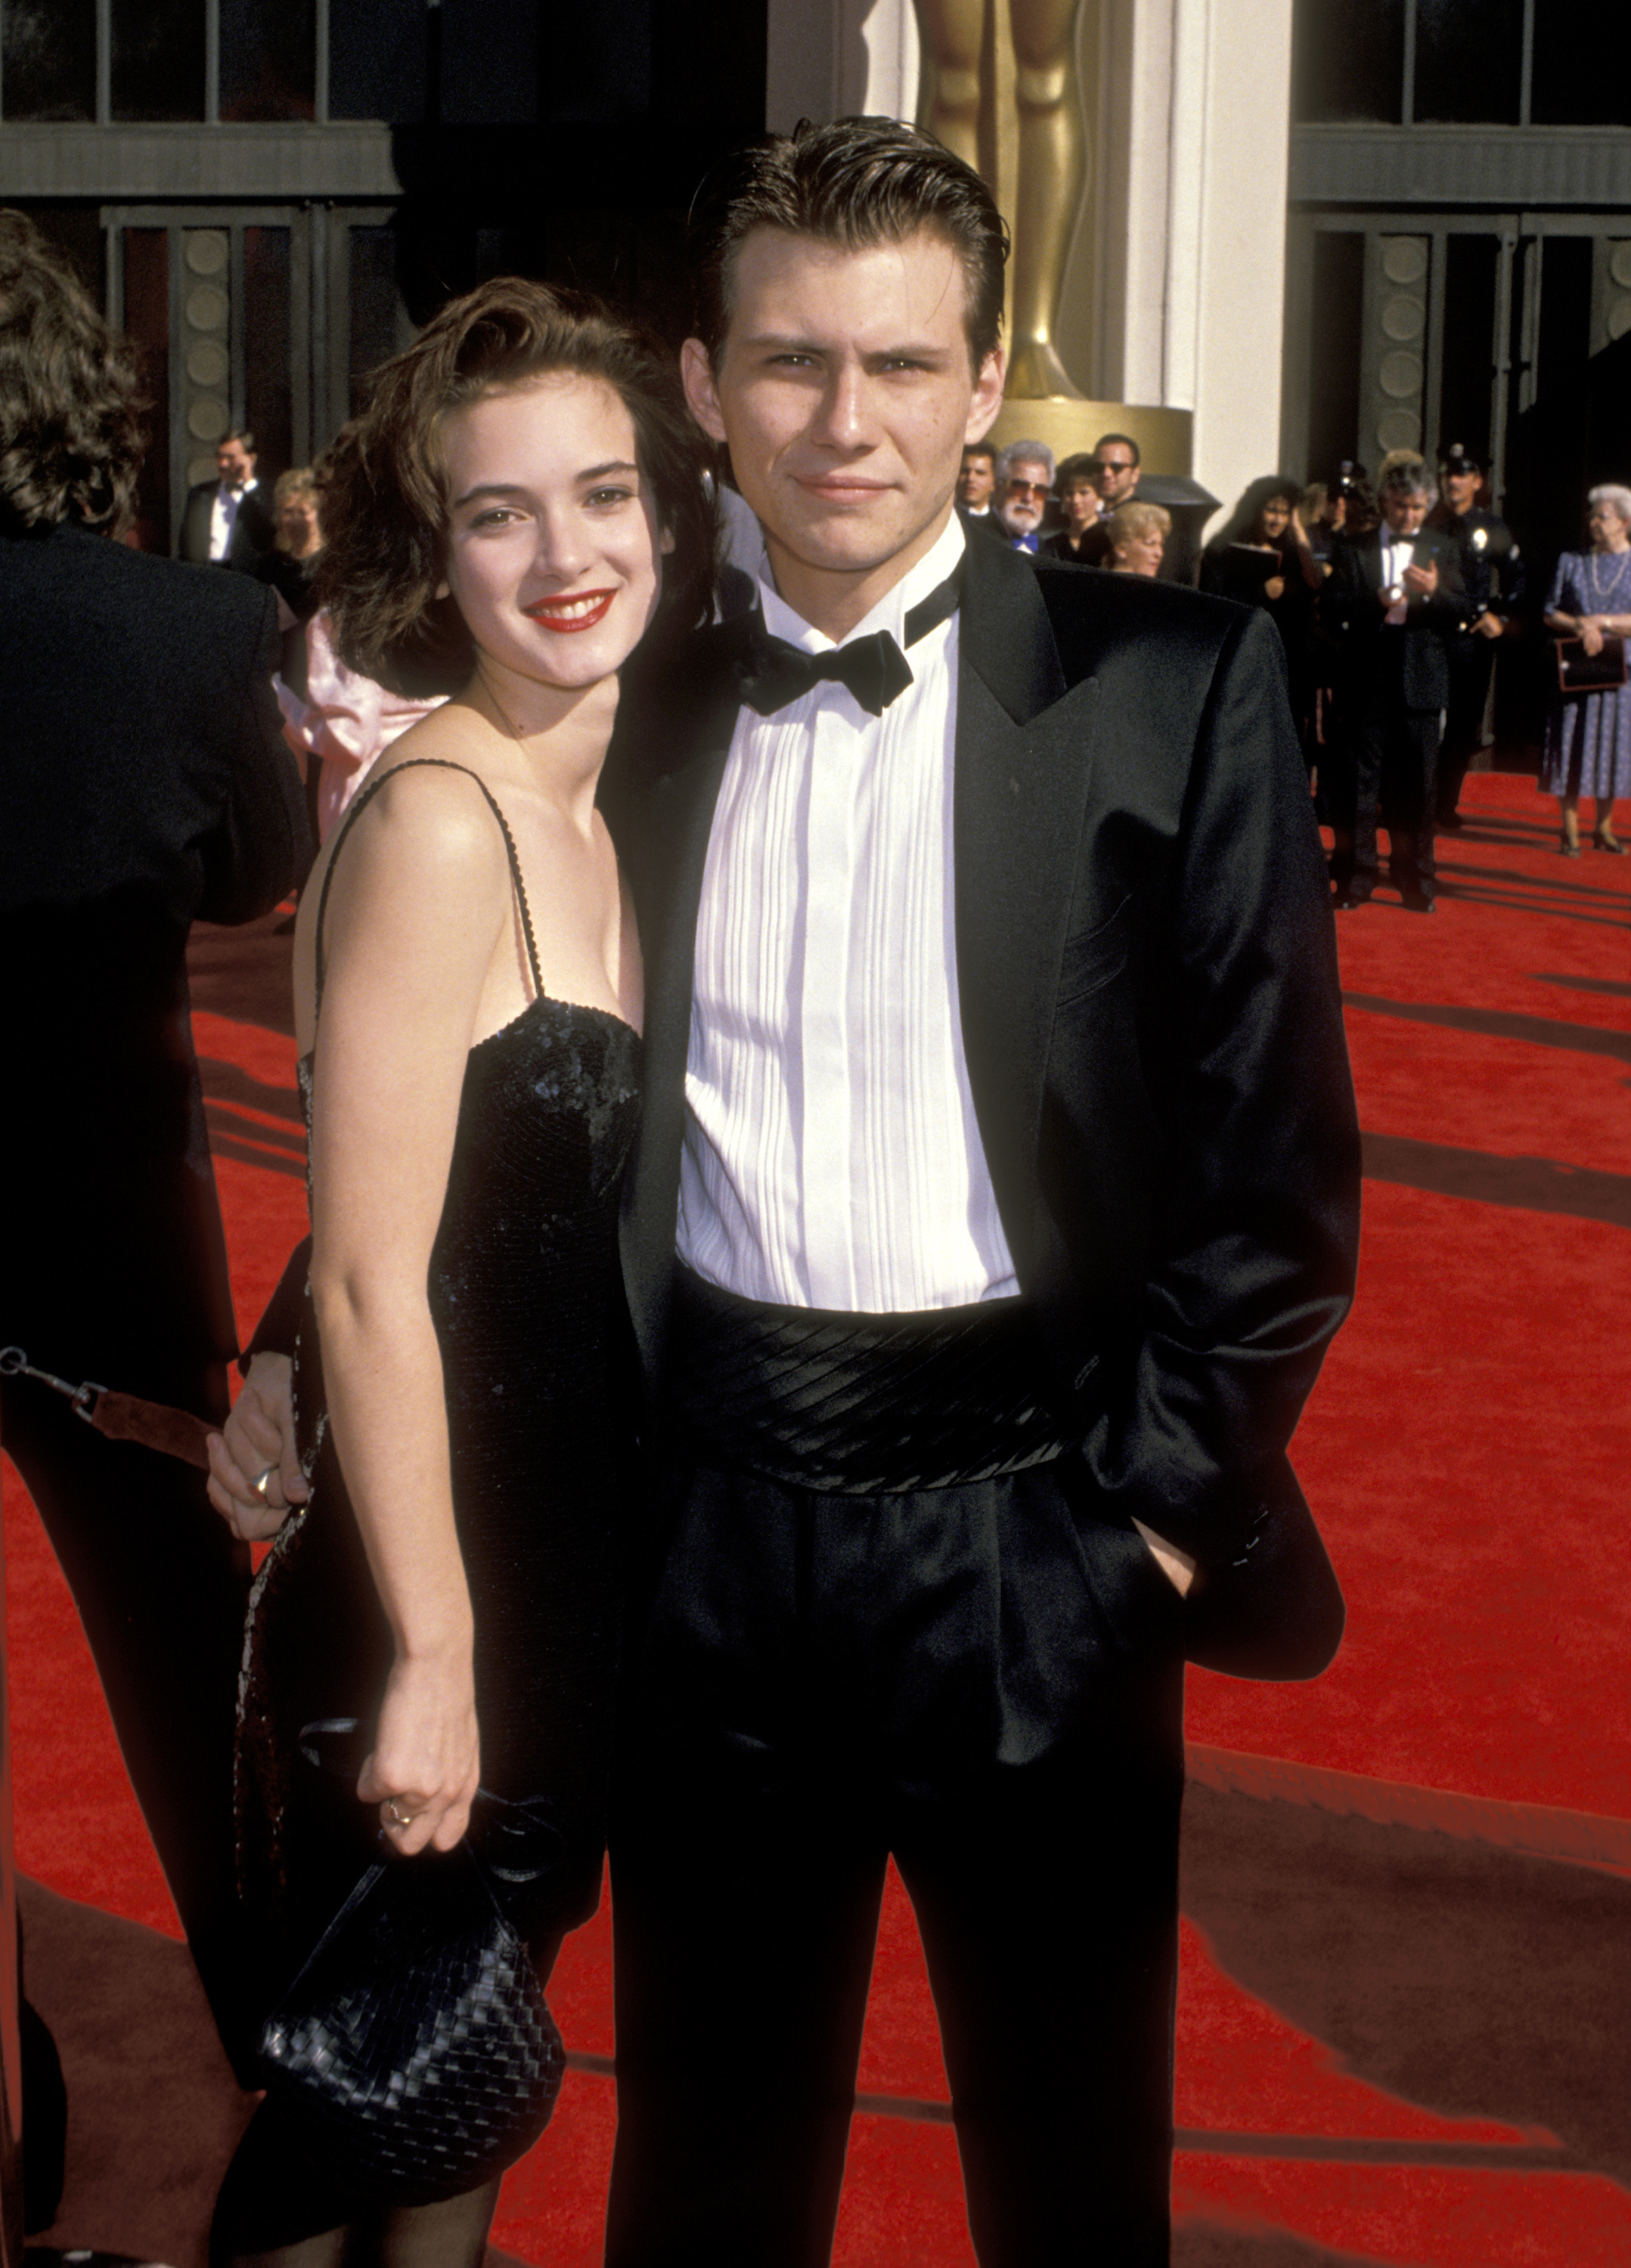 Winona Ryder and Christian Slater arrive at the 61st Academy Awards in Los Angeles, California on March 29, 1989.